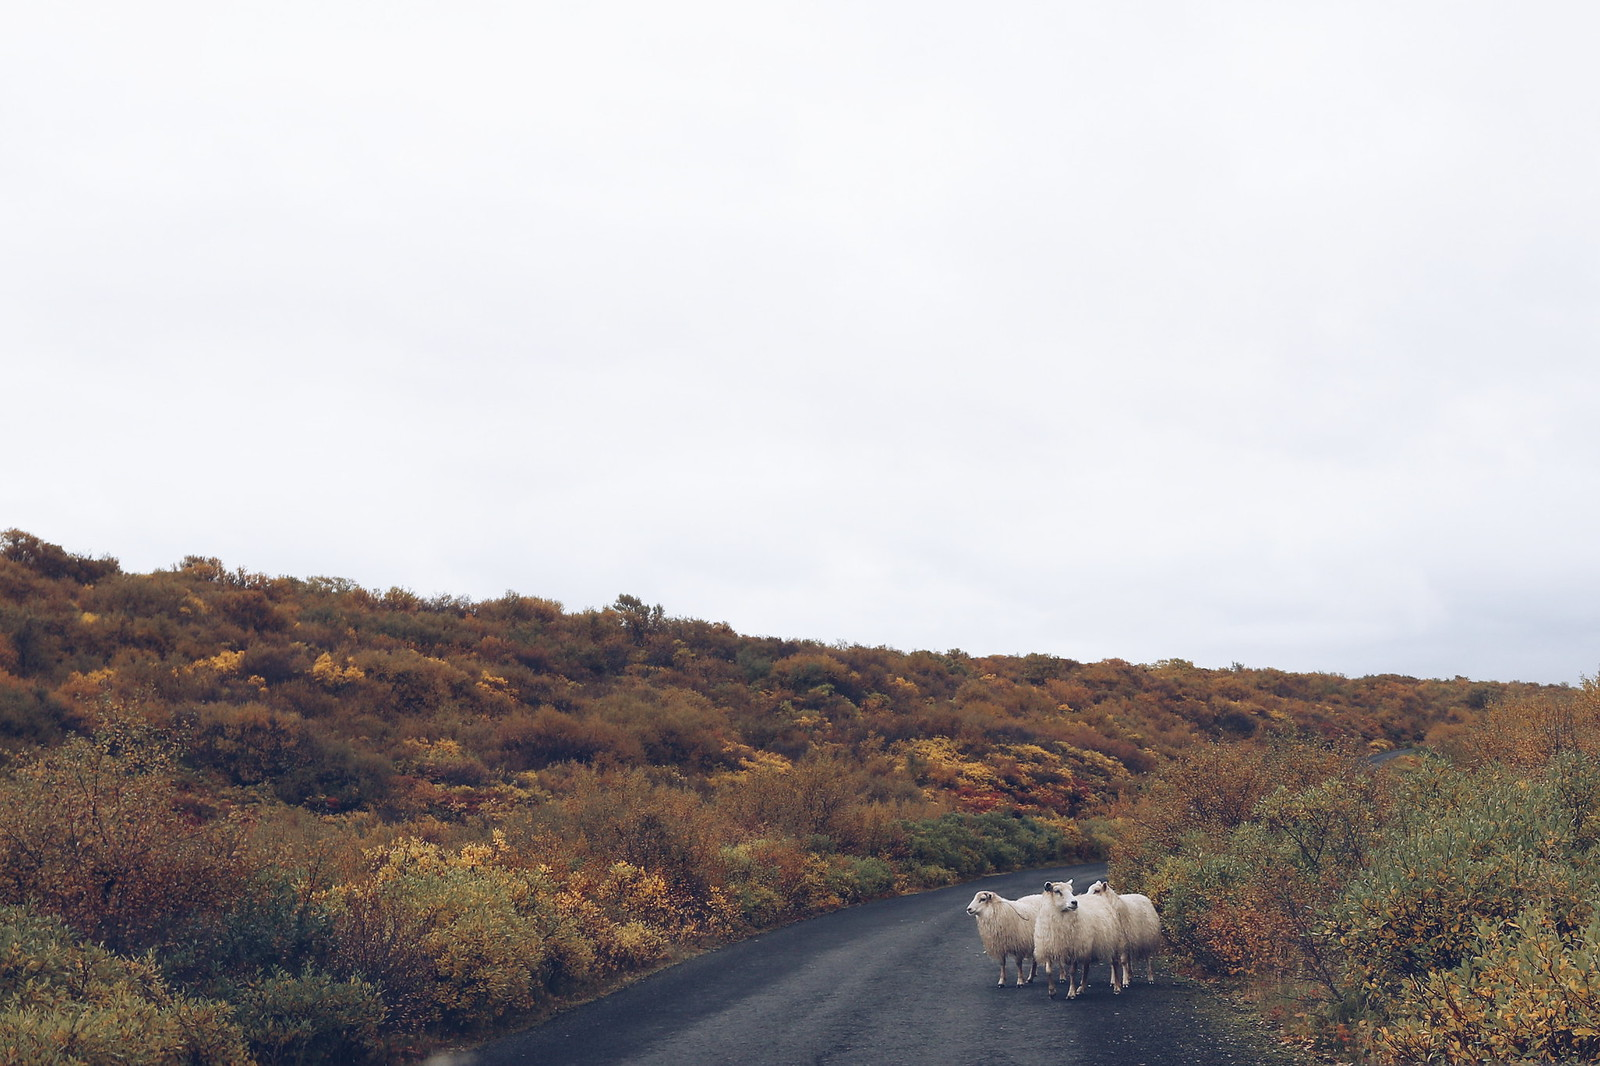 #iceland #sheep #road